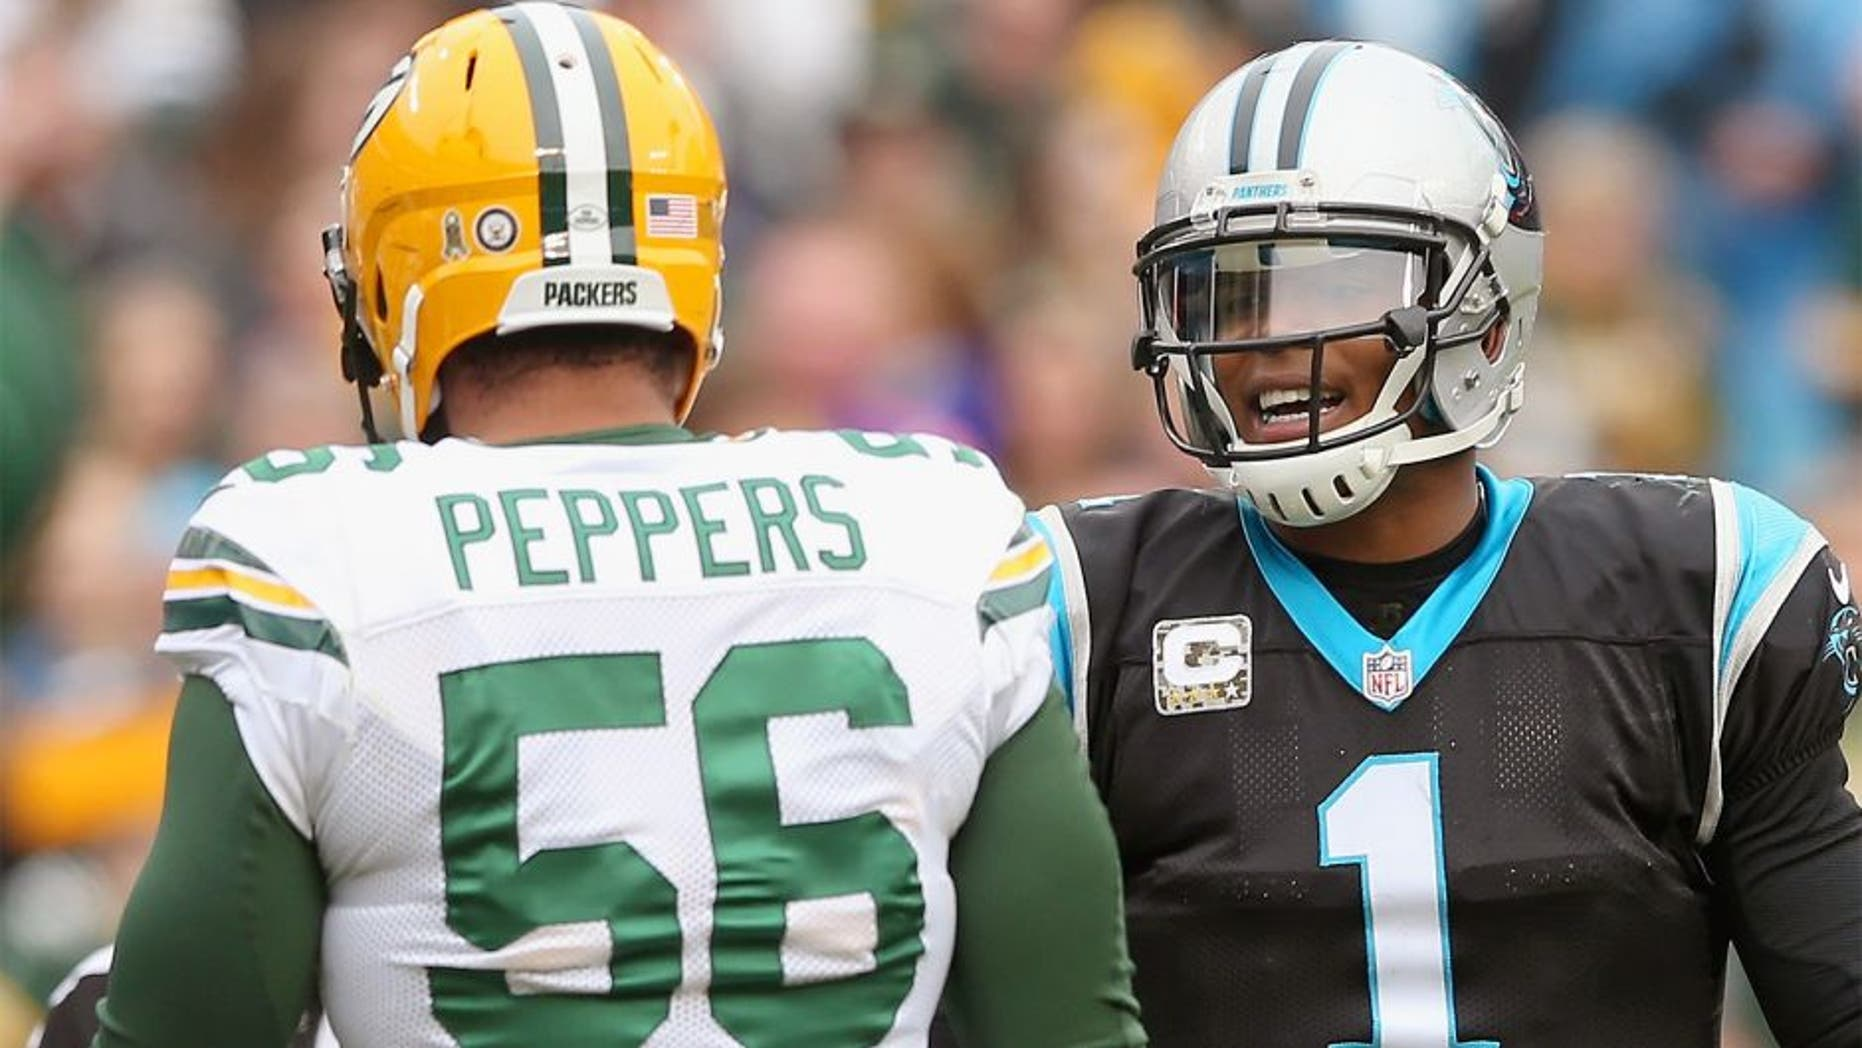 CHARLOTTE, NC - NOVEMBER 08: Cam Newton #1 of the Carolina Panthers talks to Julius Peppers #56 of the Green Bay Packers in the 1st half during their game at Bank of America Stadium on November 8, 2015 in Charlotte, North Carolina. (Photo by Streeter Lecka/Getty Images)